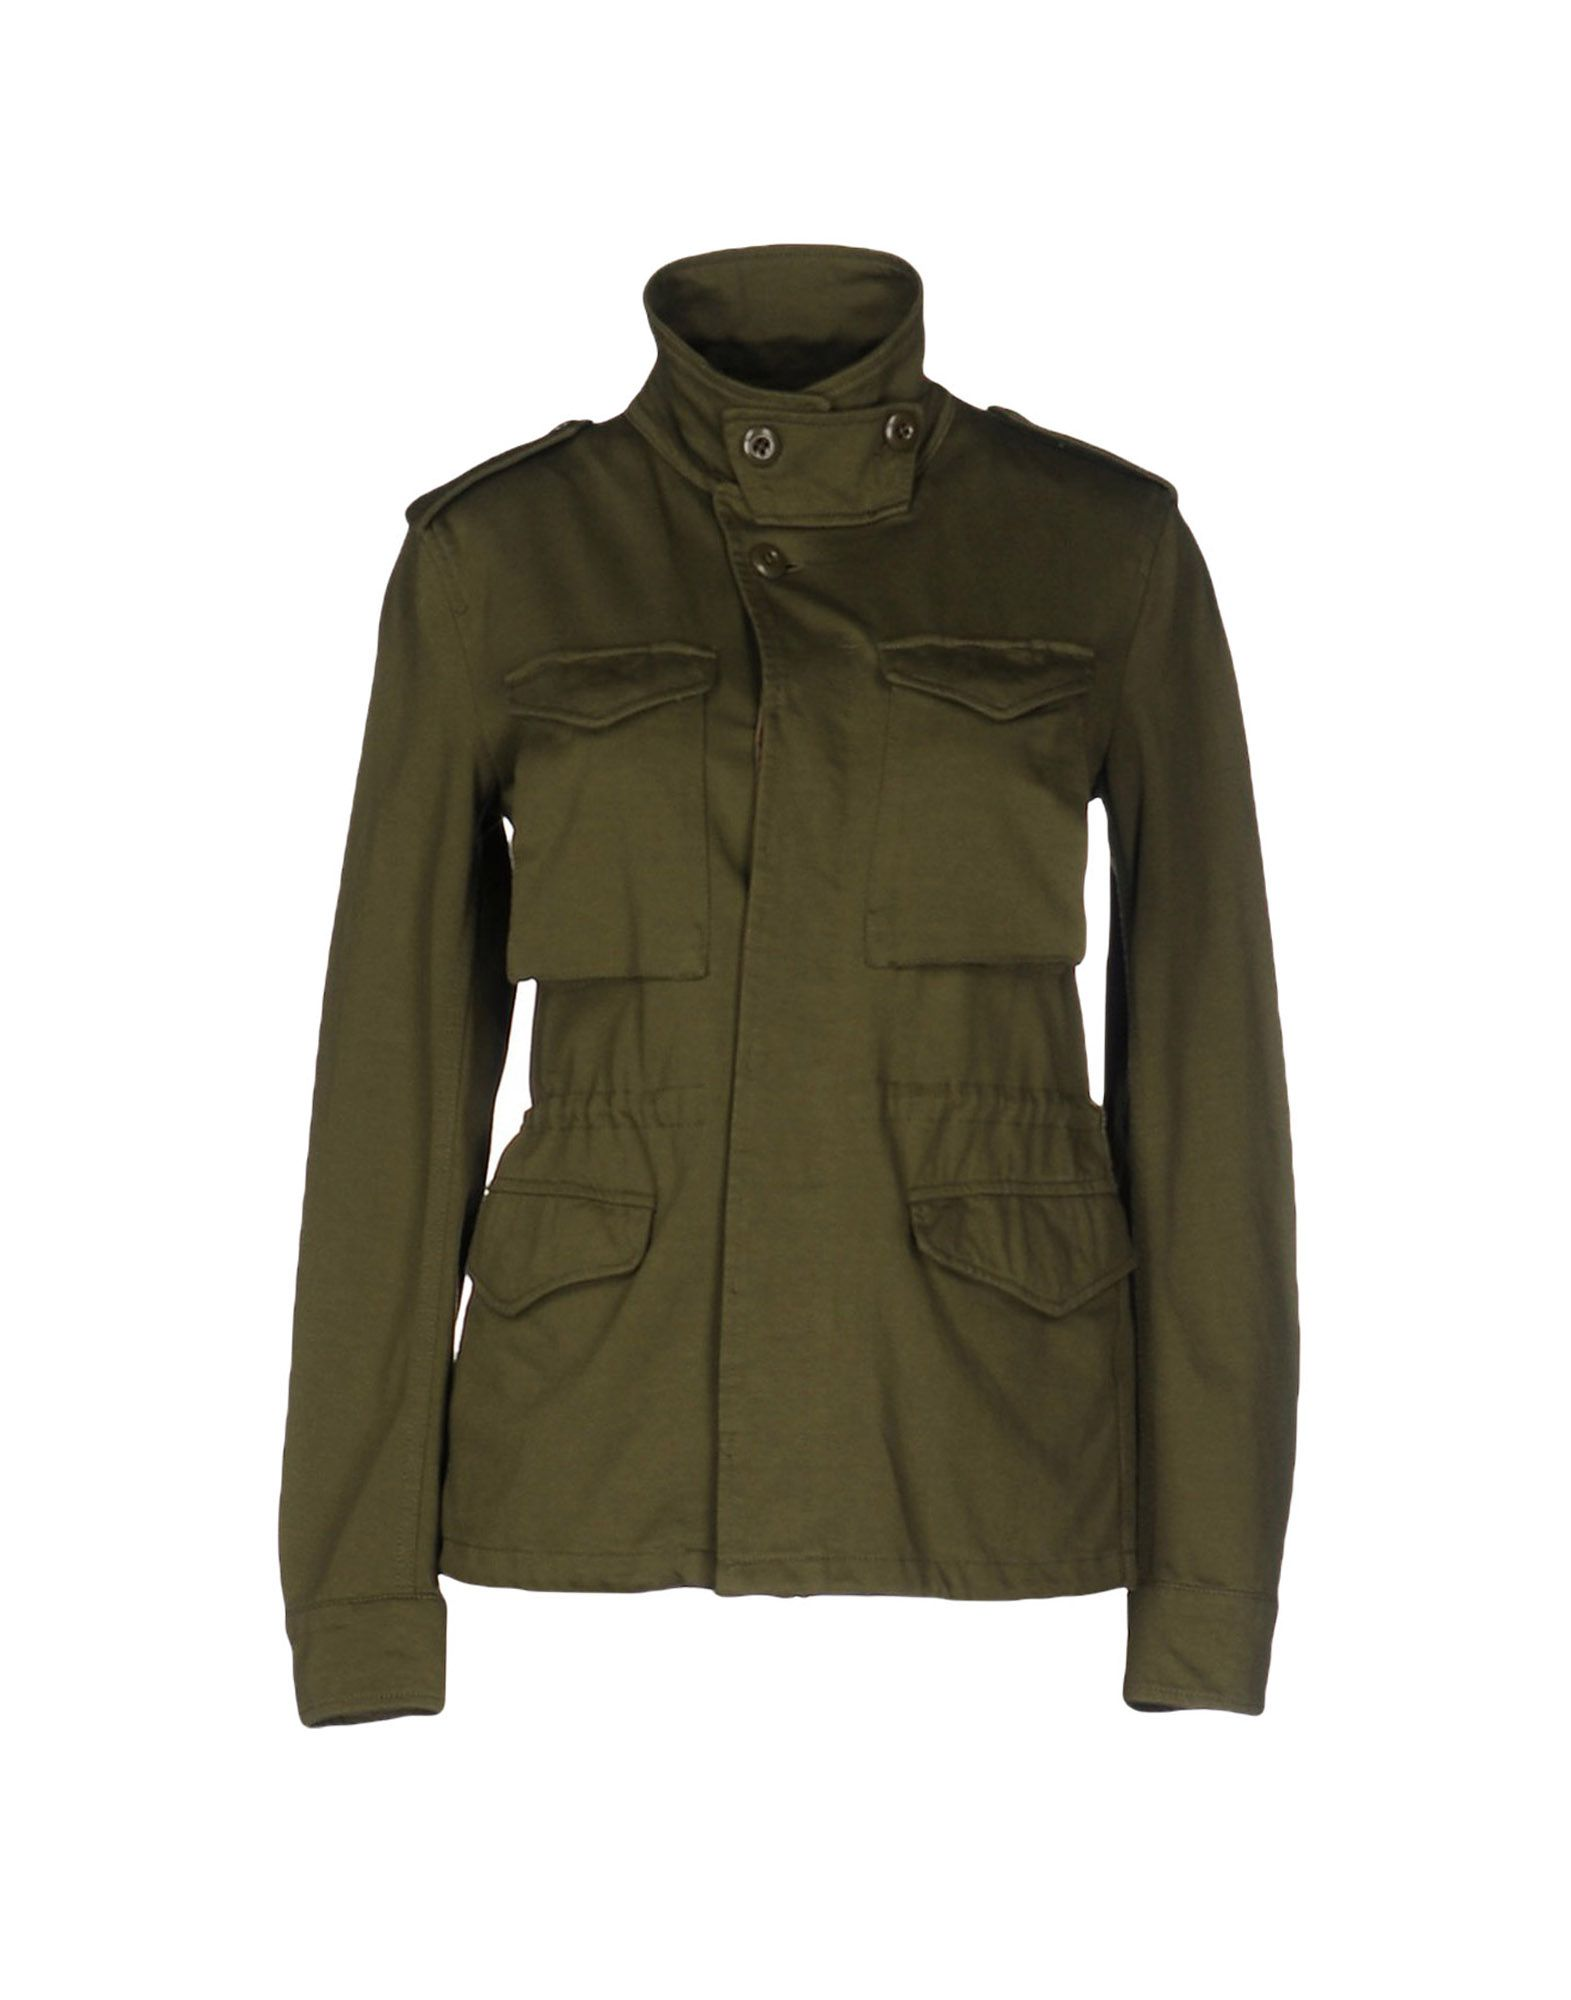 NLST Jacket in Military Green